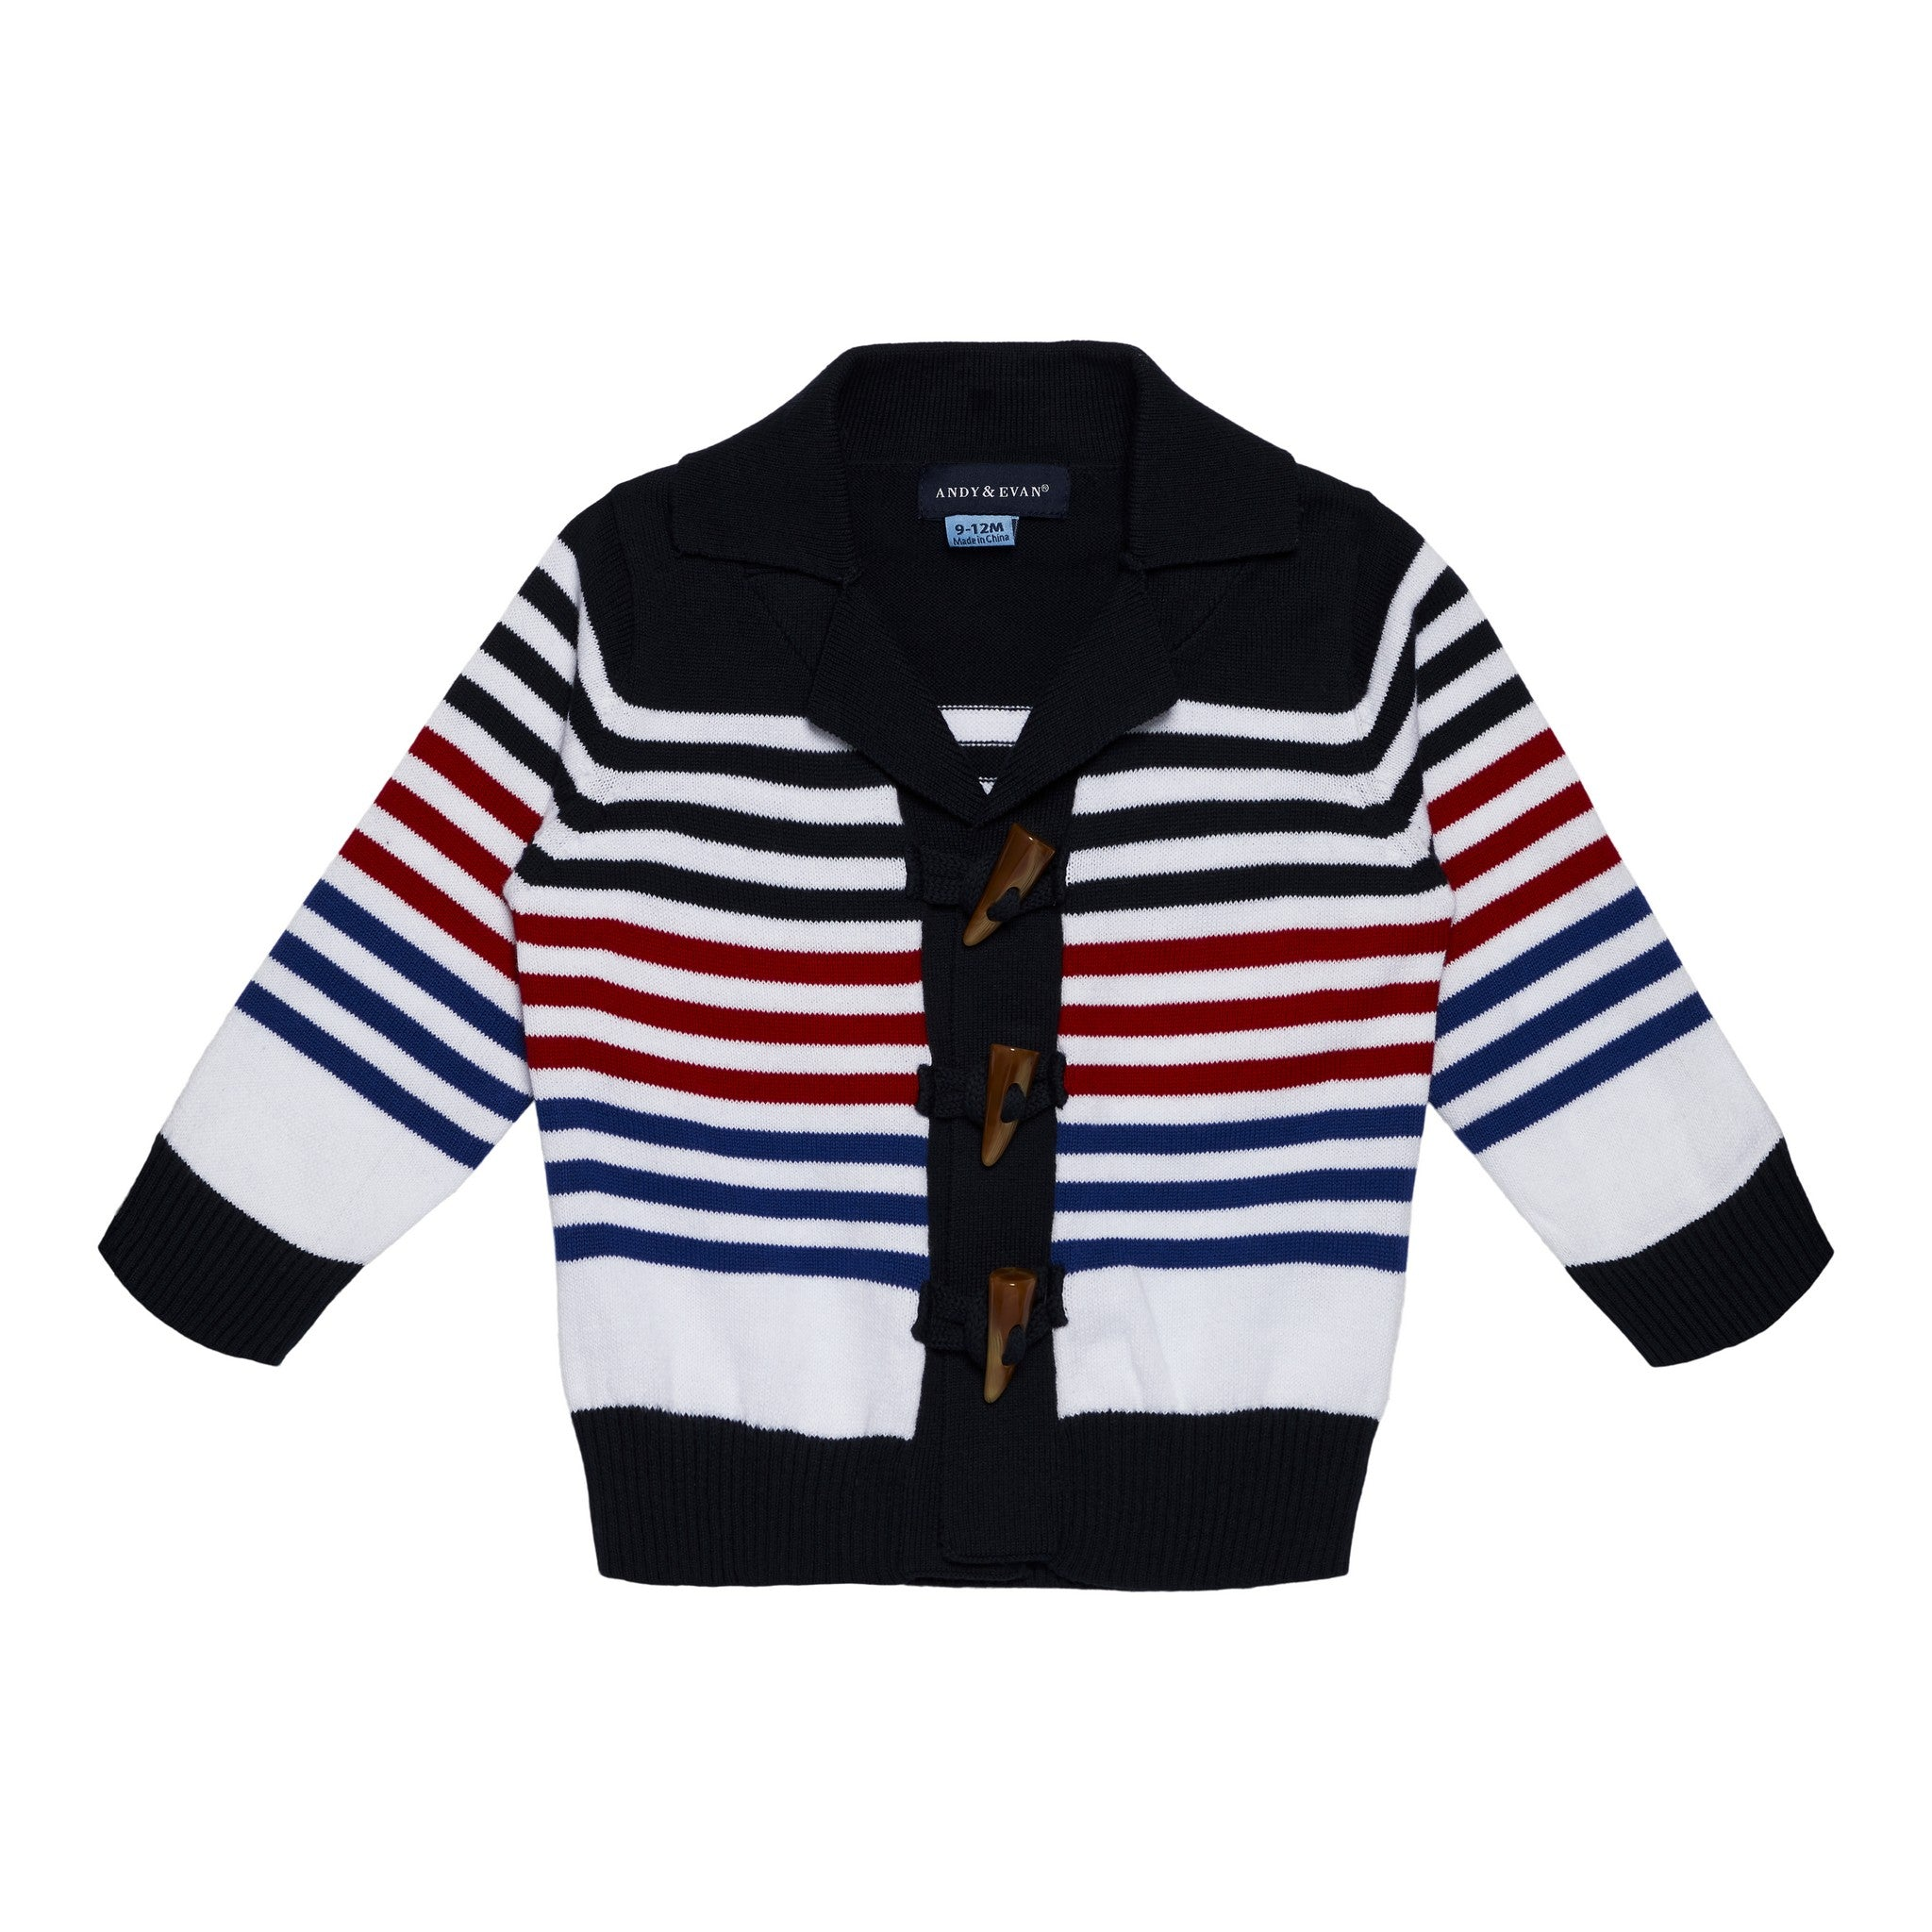 Andy /& Evan Baby Boys Striped Cardigan-Infant